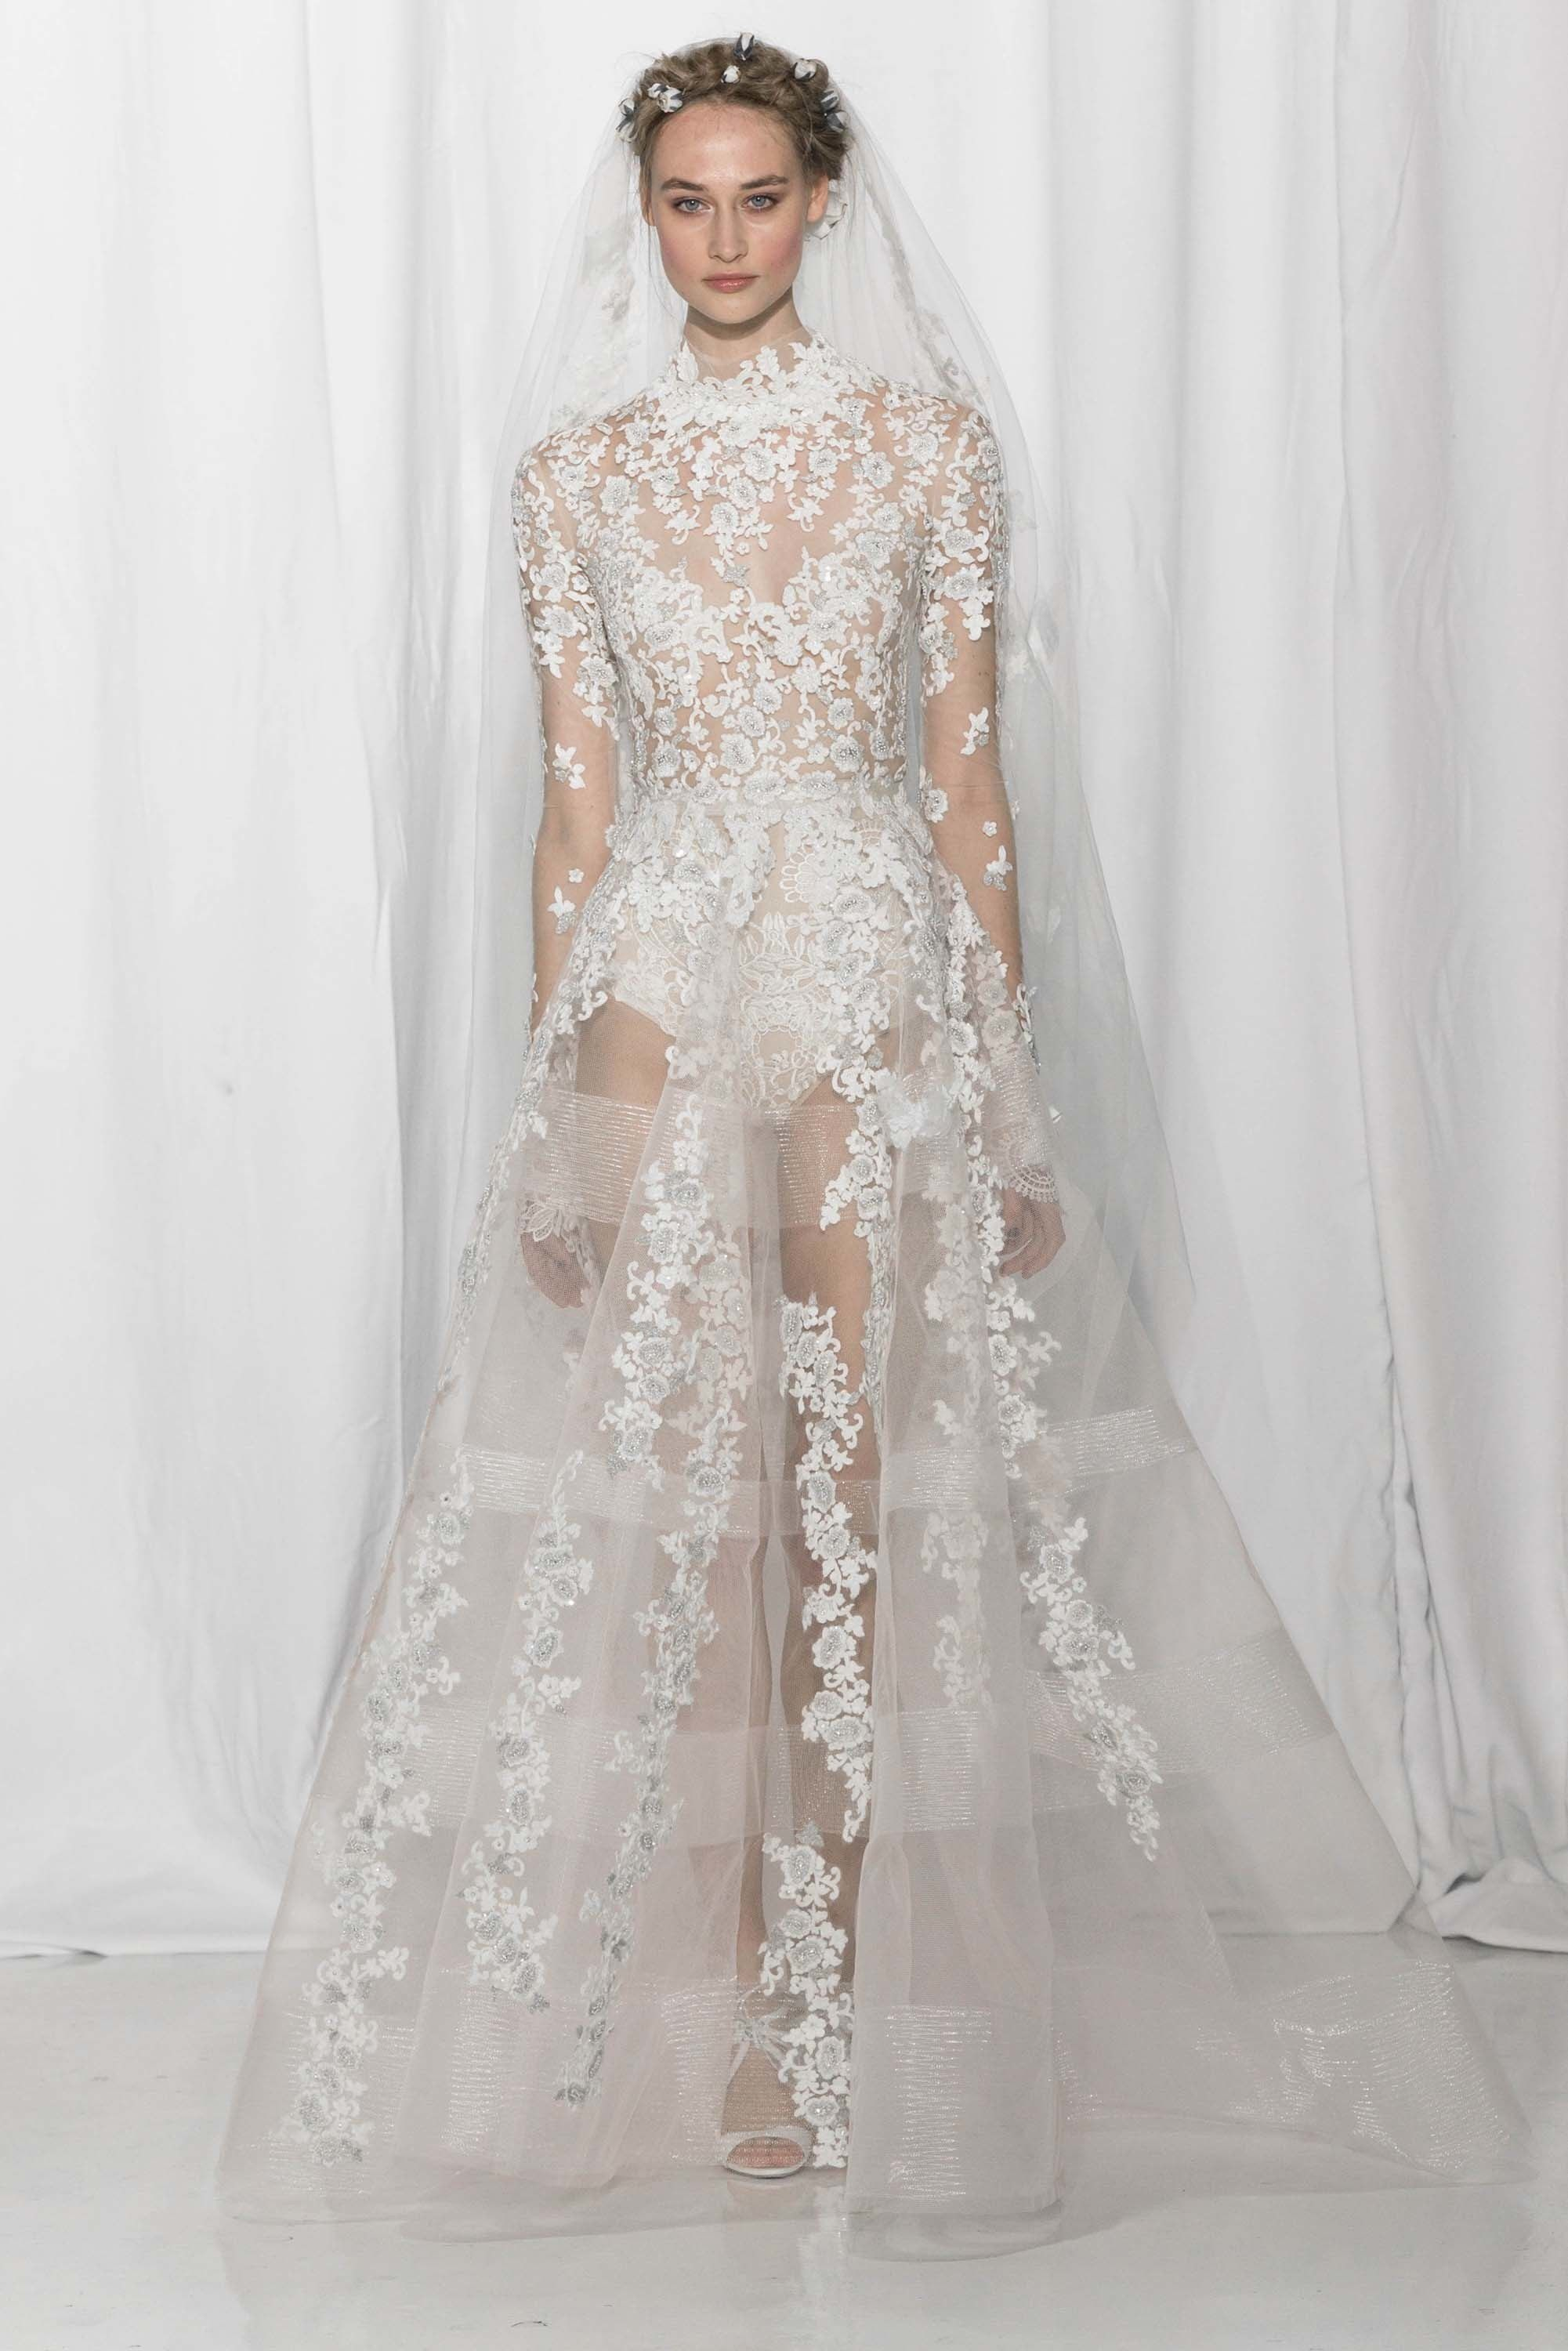 Reem Acra Bridal Fall 2017 Fashion Show | Reem acra bridal, Wedding ...